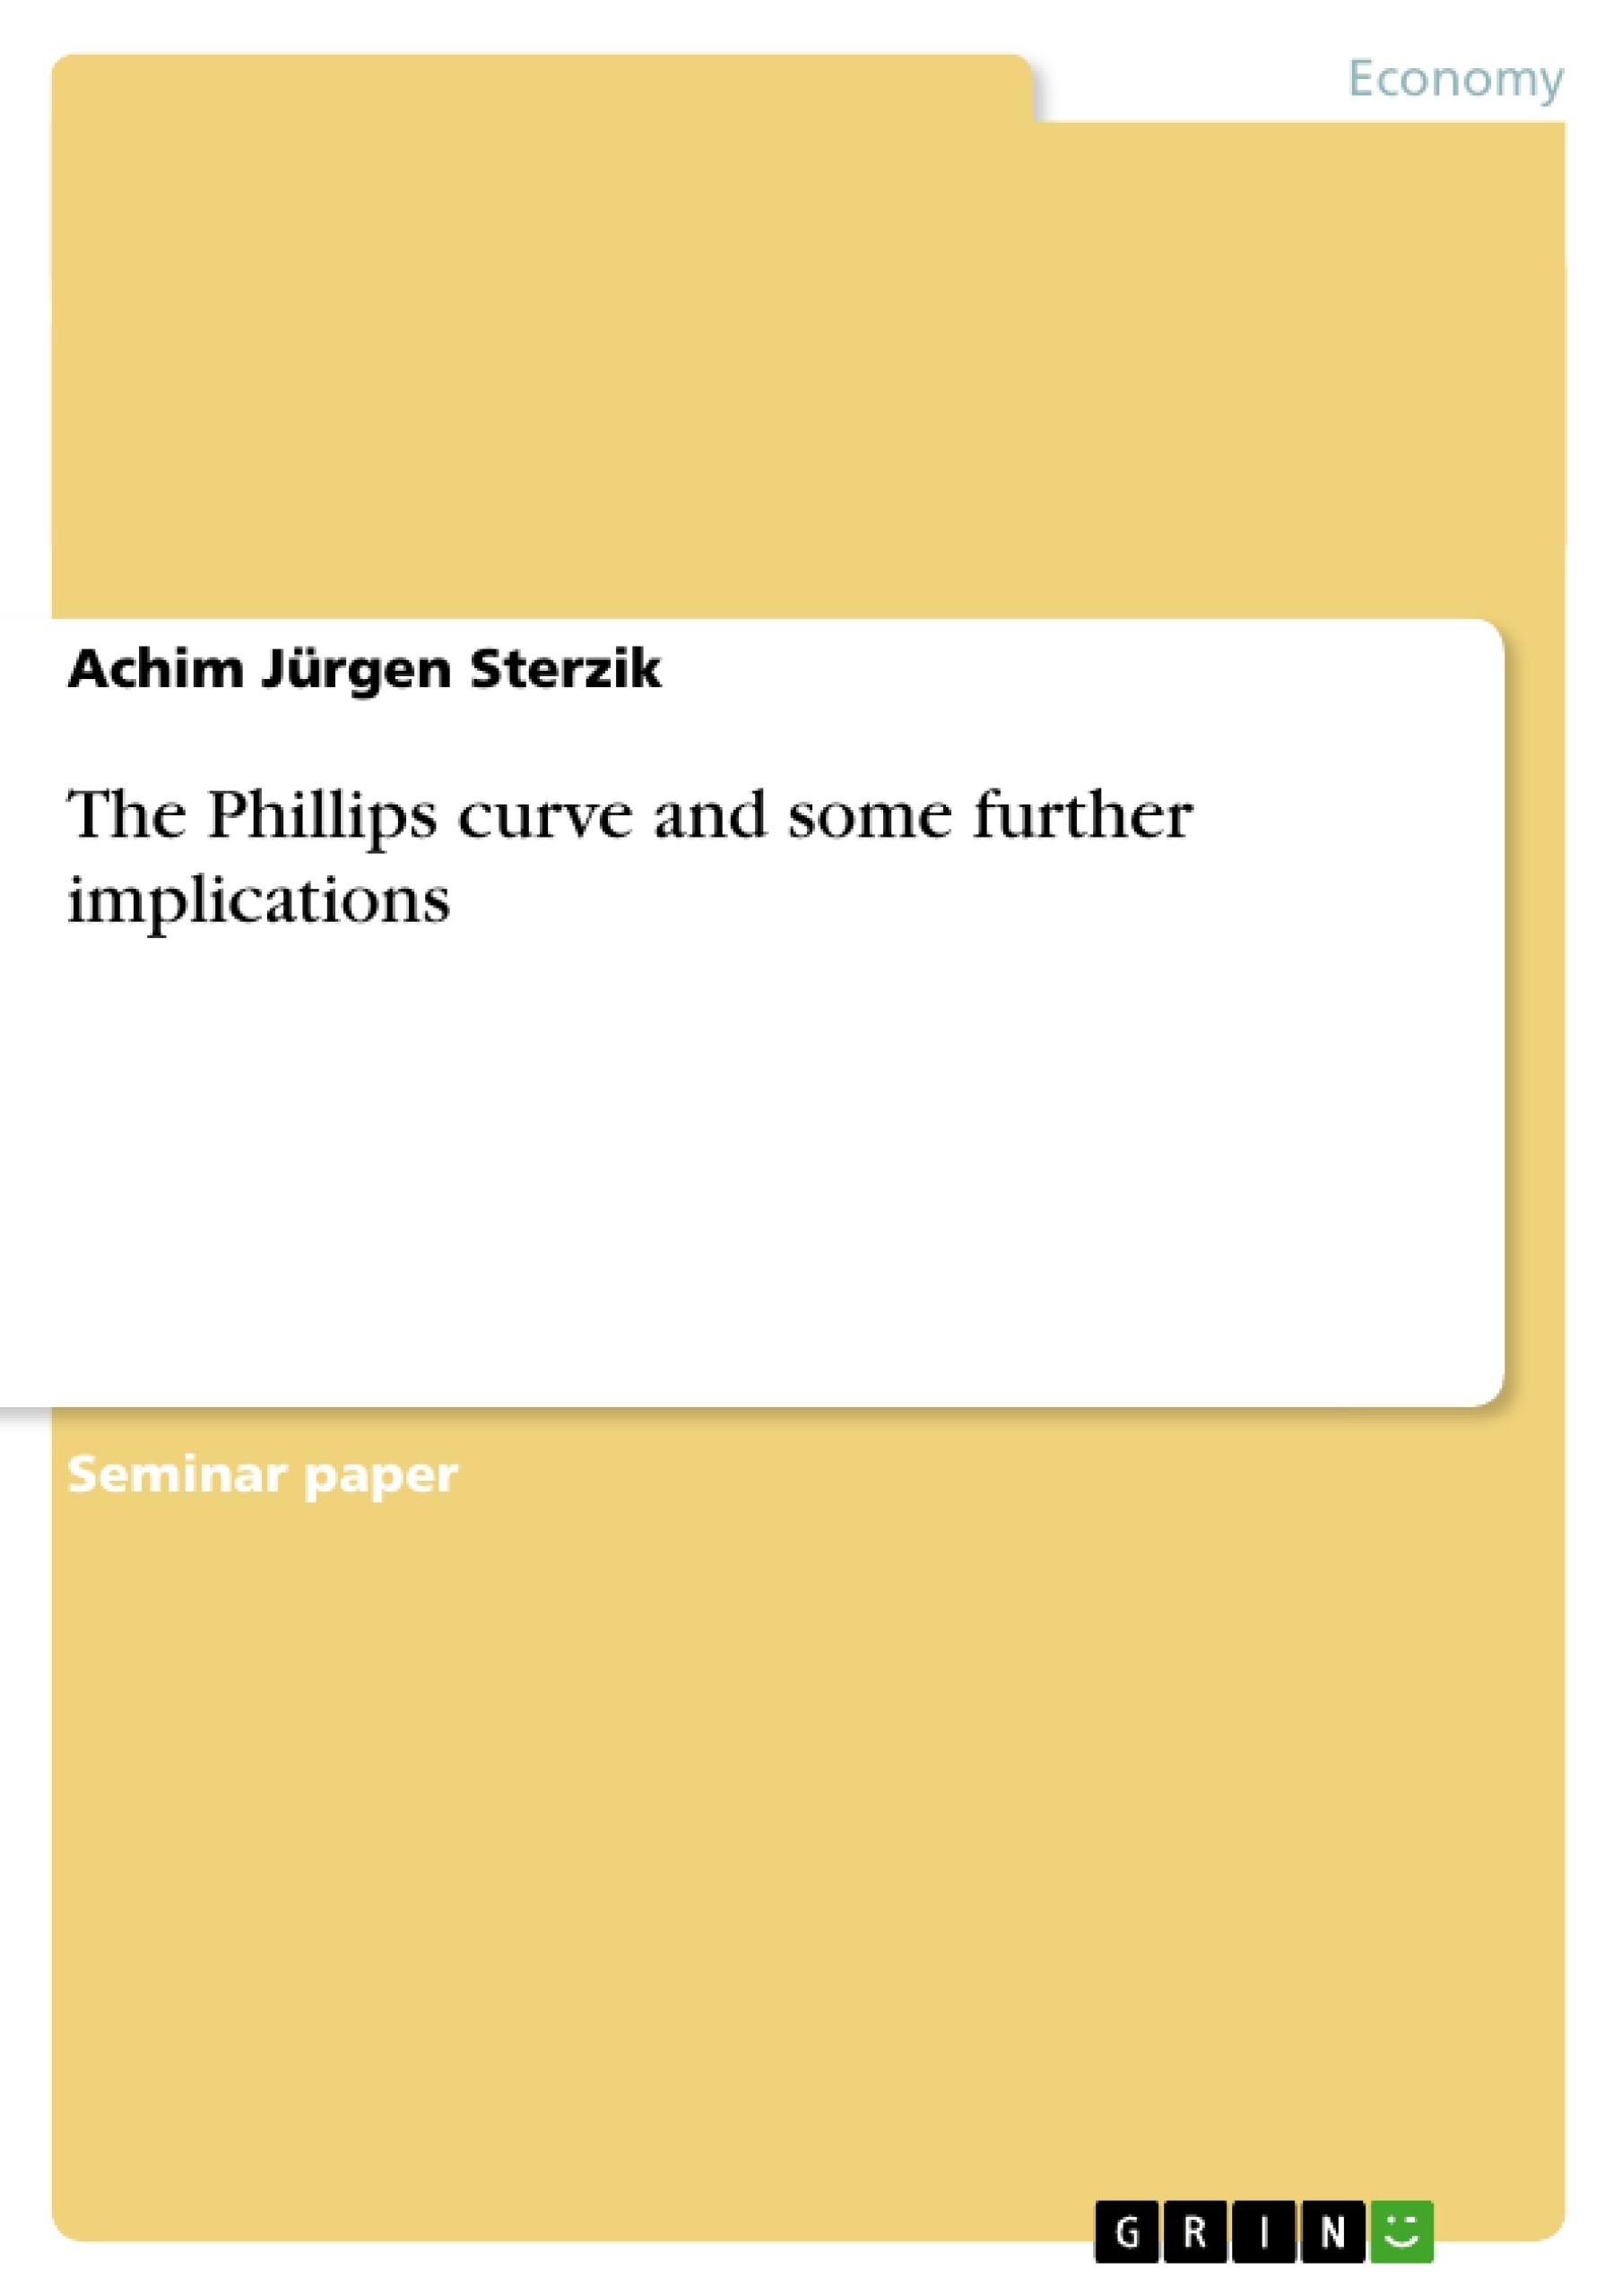 phillips curve essay View phillips curve research papers on academiaedu for free.